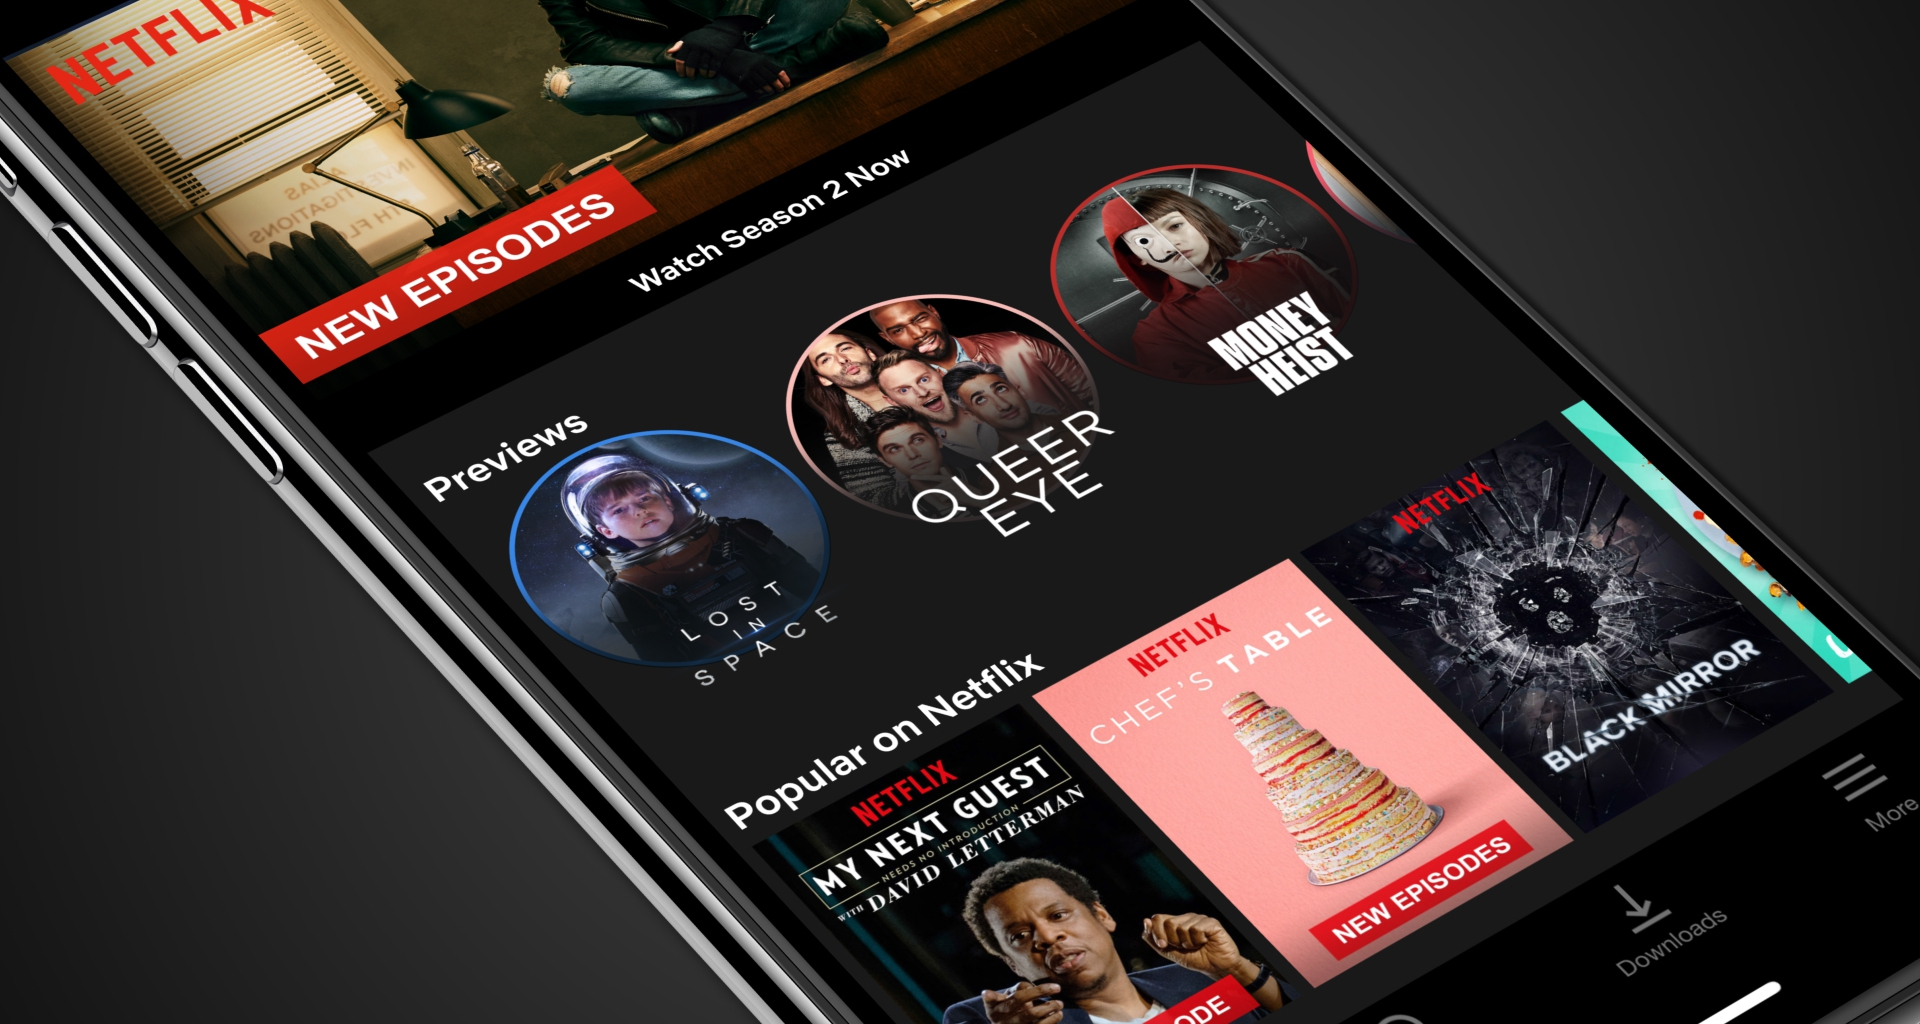 Netflix launches 30-second preview videos on mobile